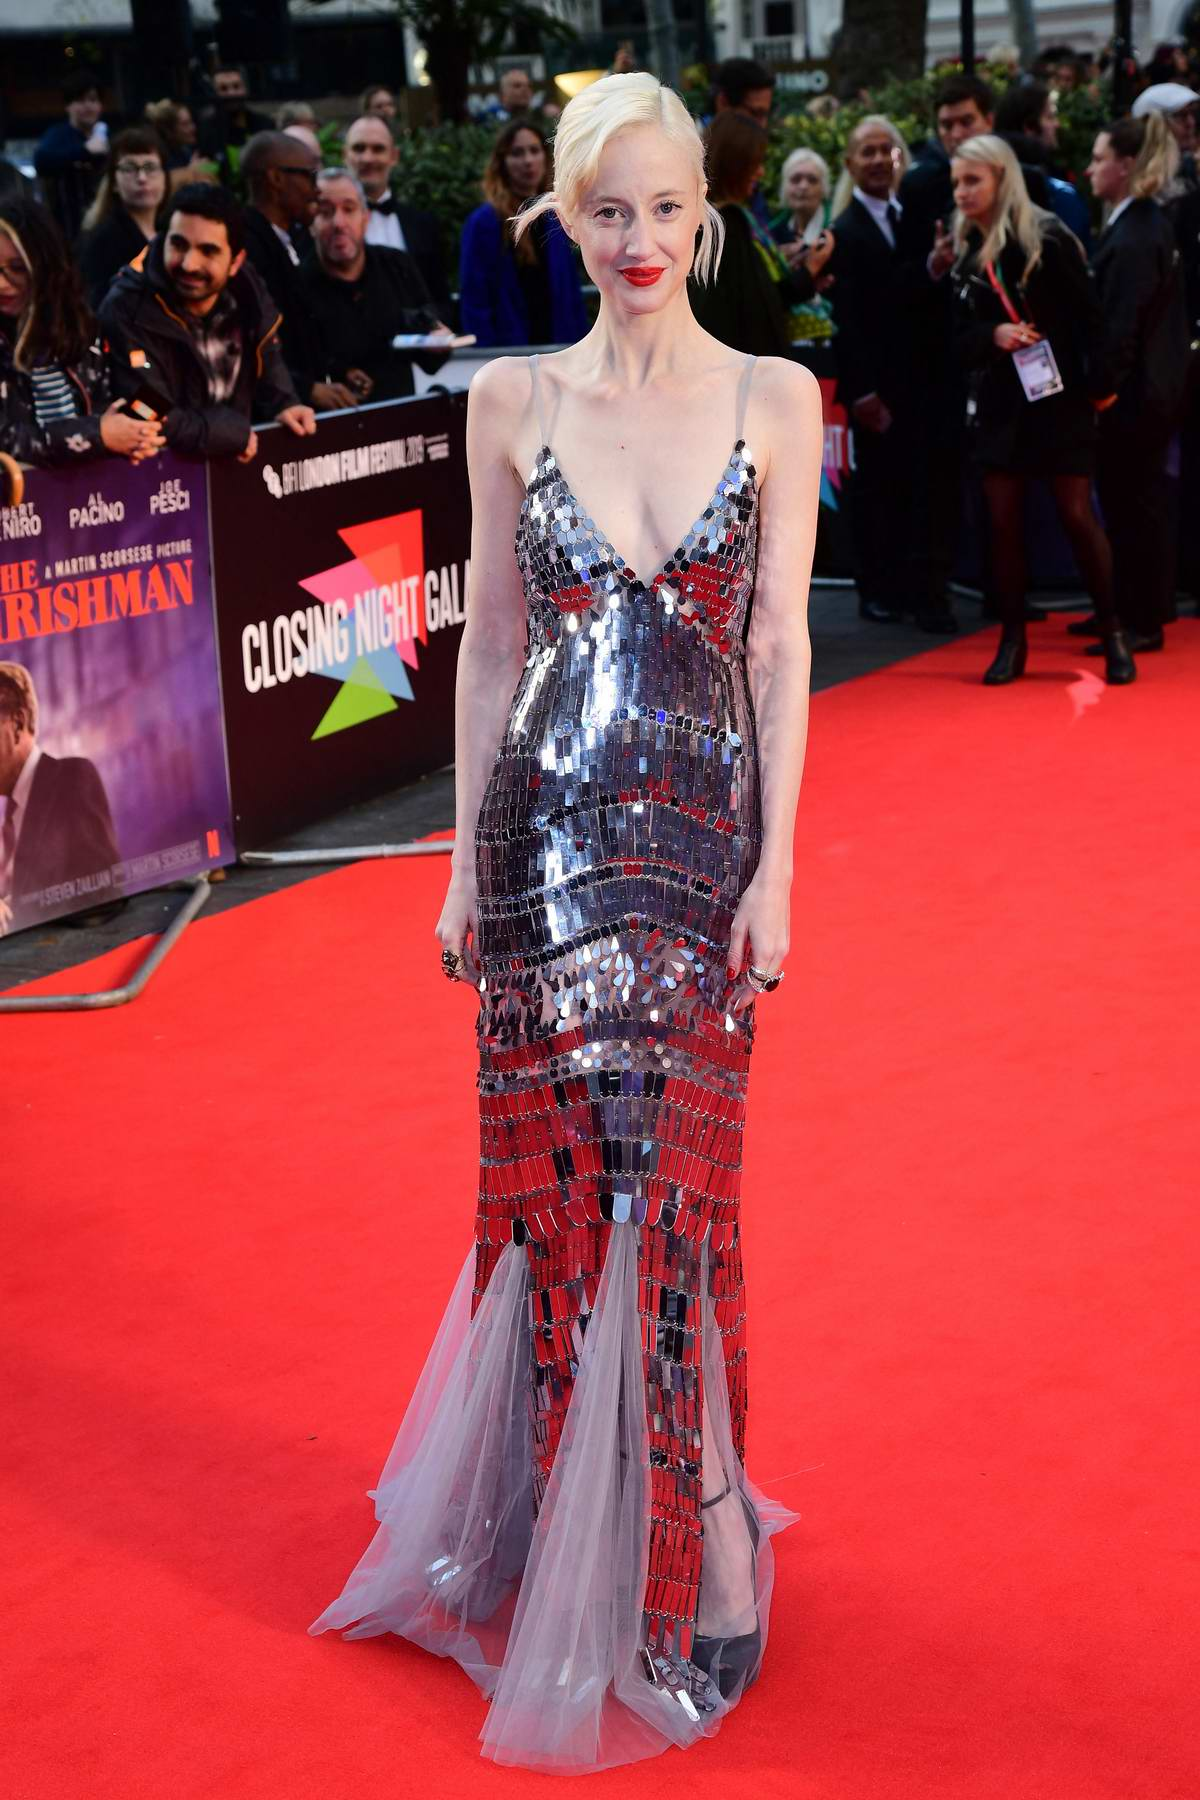 Andrea Riseborough attends the Premier of 'The Irishman' during the 63rd BFI London Film Festival in London, UK